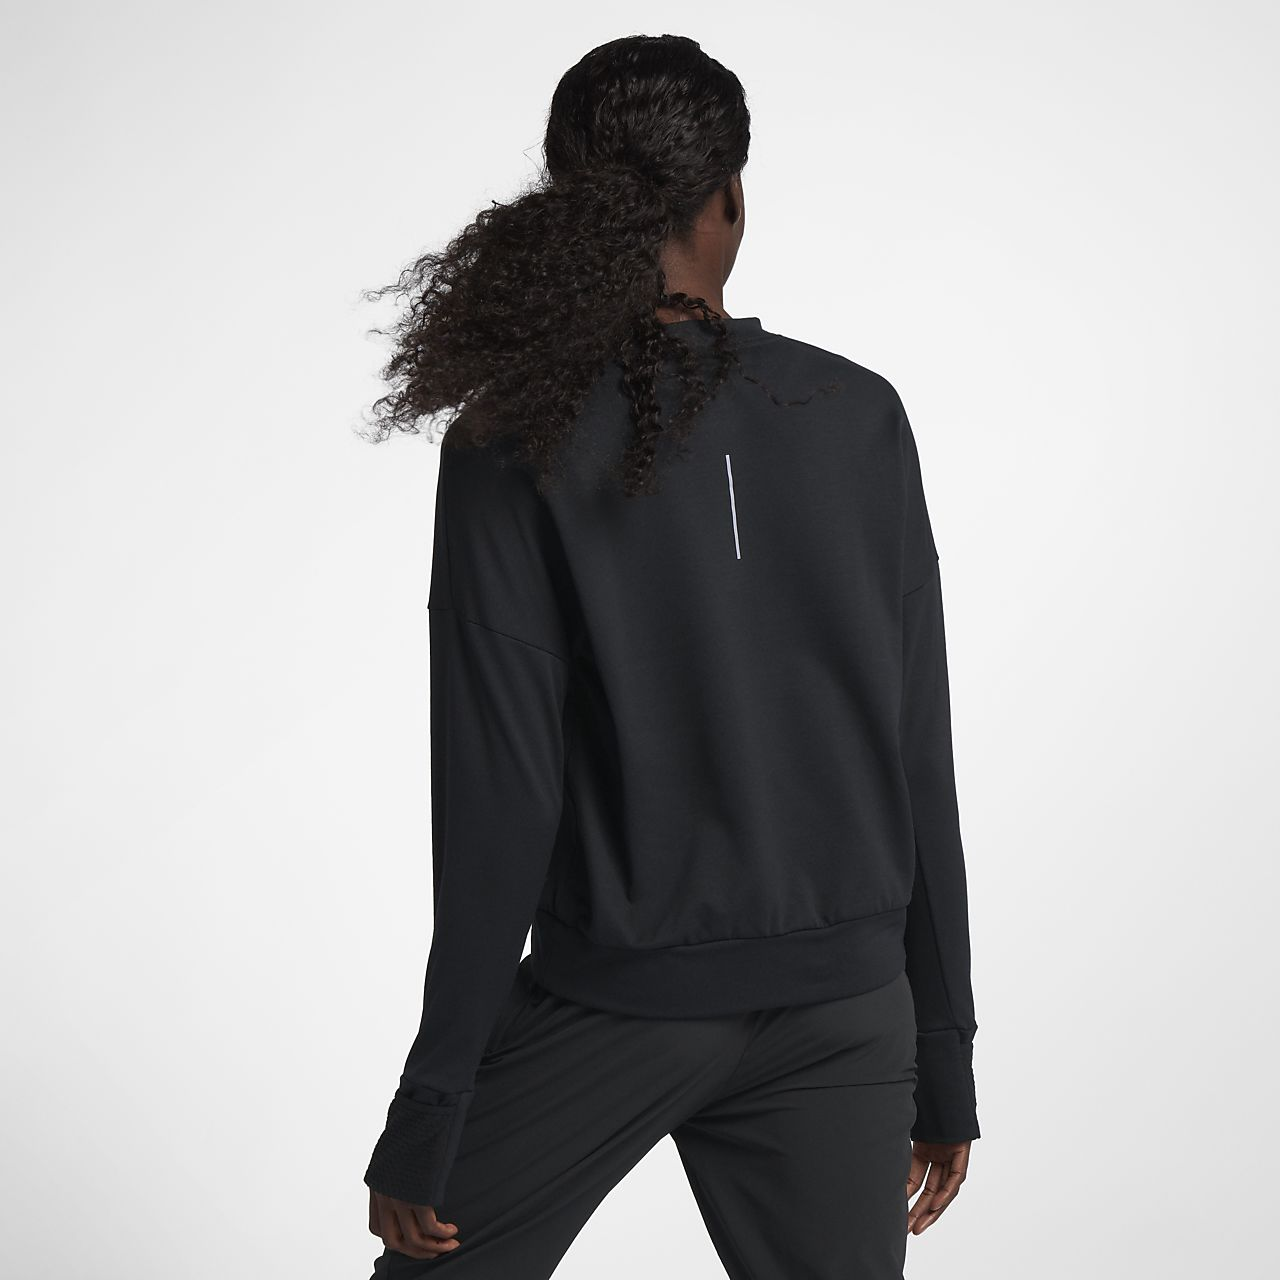 Nike Therma Sphere Element Women's Running Top